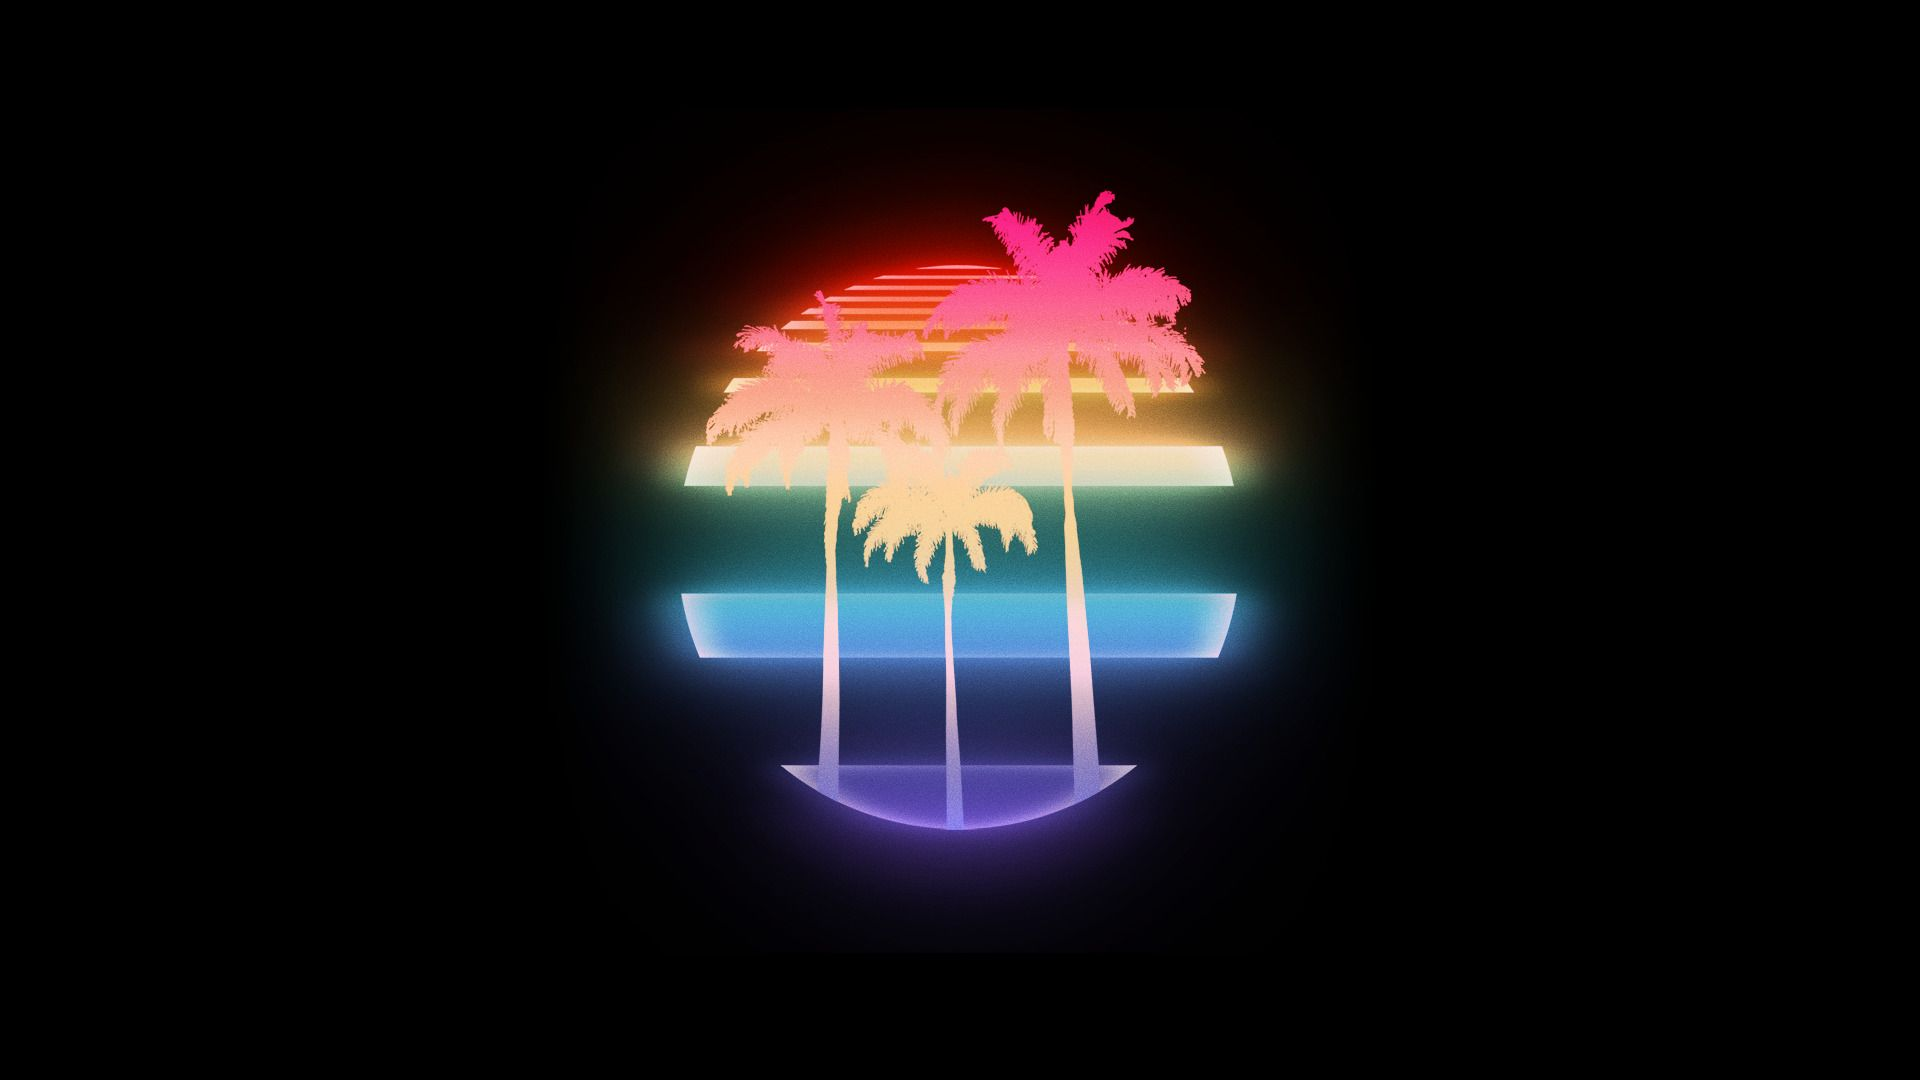 Vhs Palm Trees 1980s New Retro Wave Retro Style Vintage